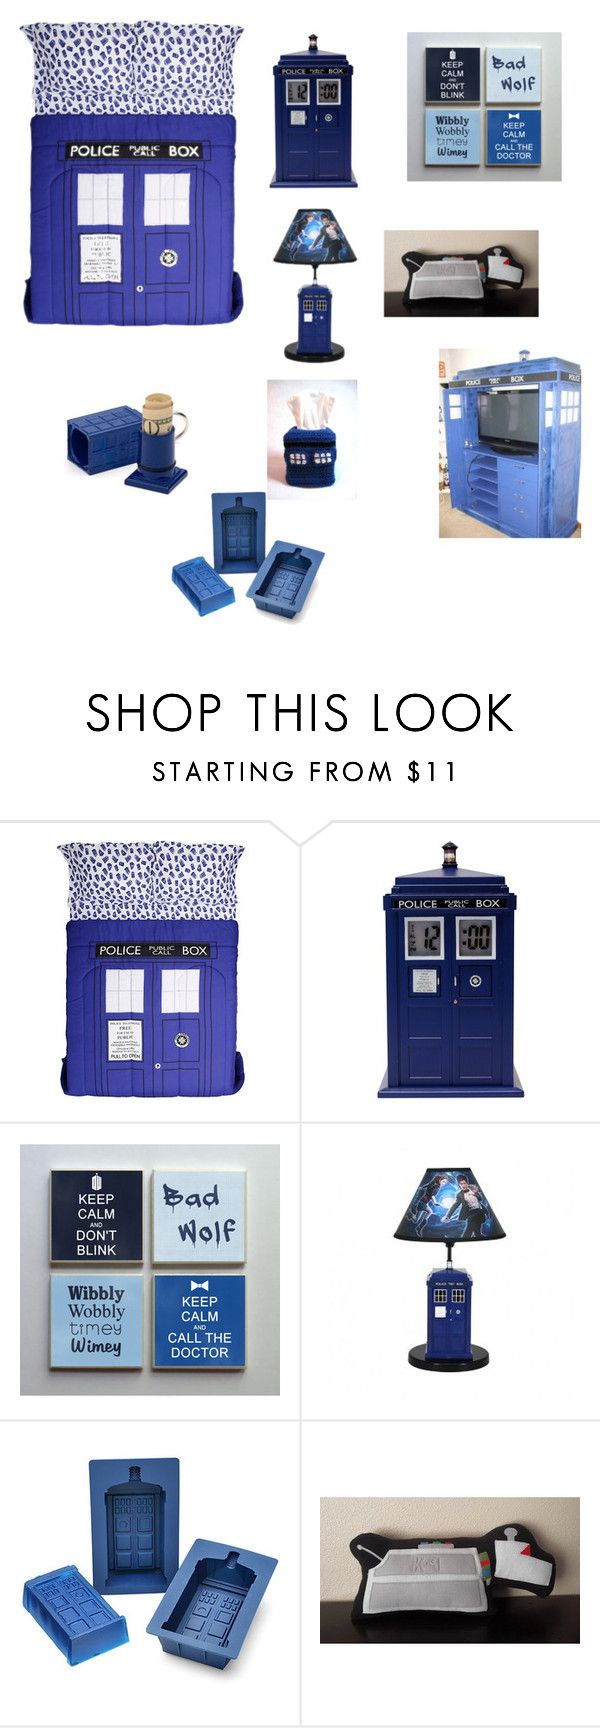 doctor doors interior design - 1000+ ideas about Doctor Who Bedroom on Pinterest Doctor Who ...